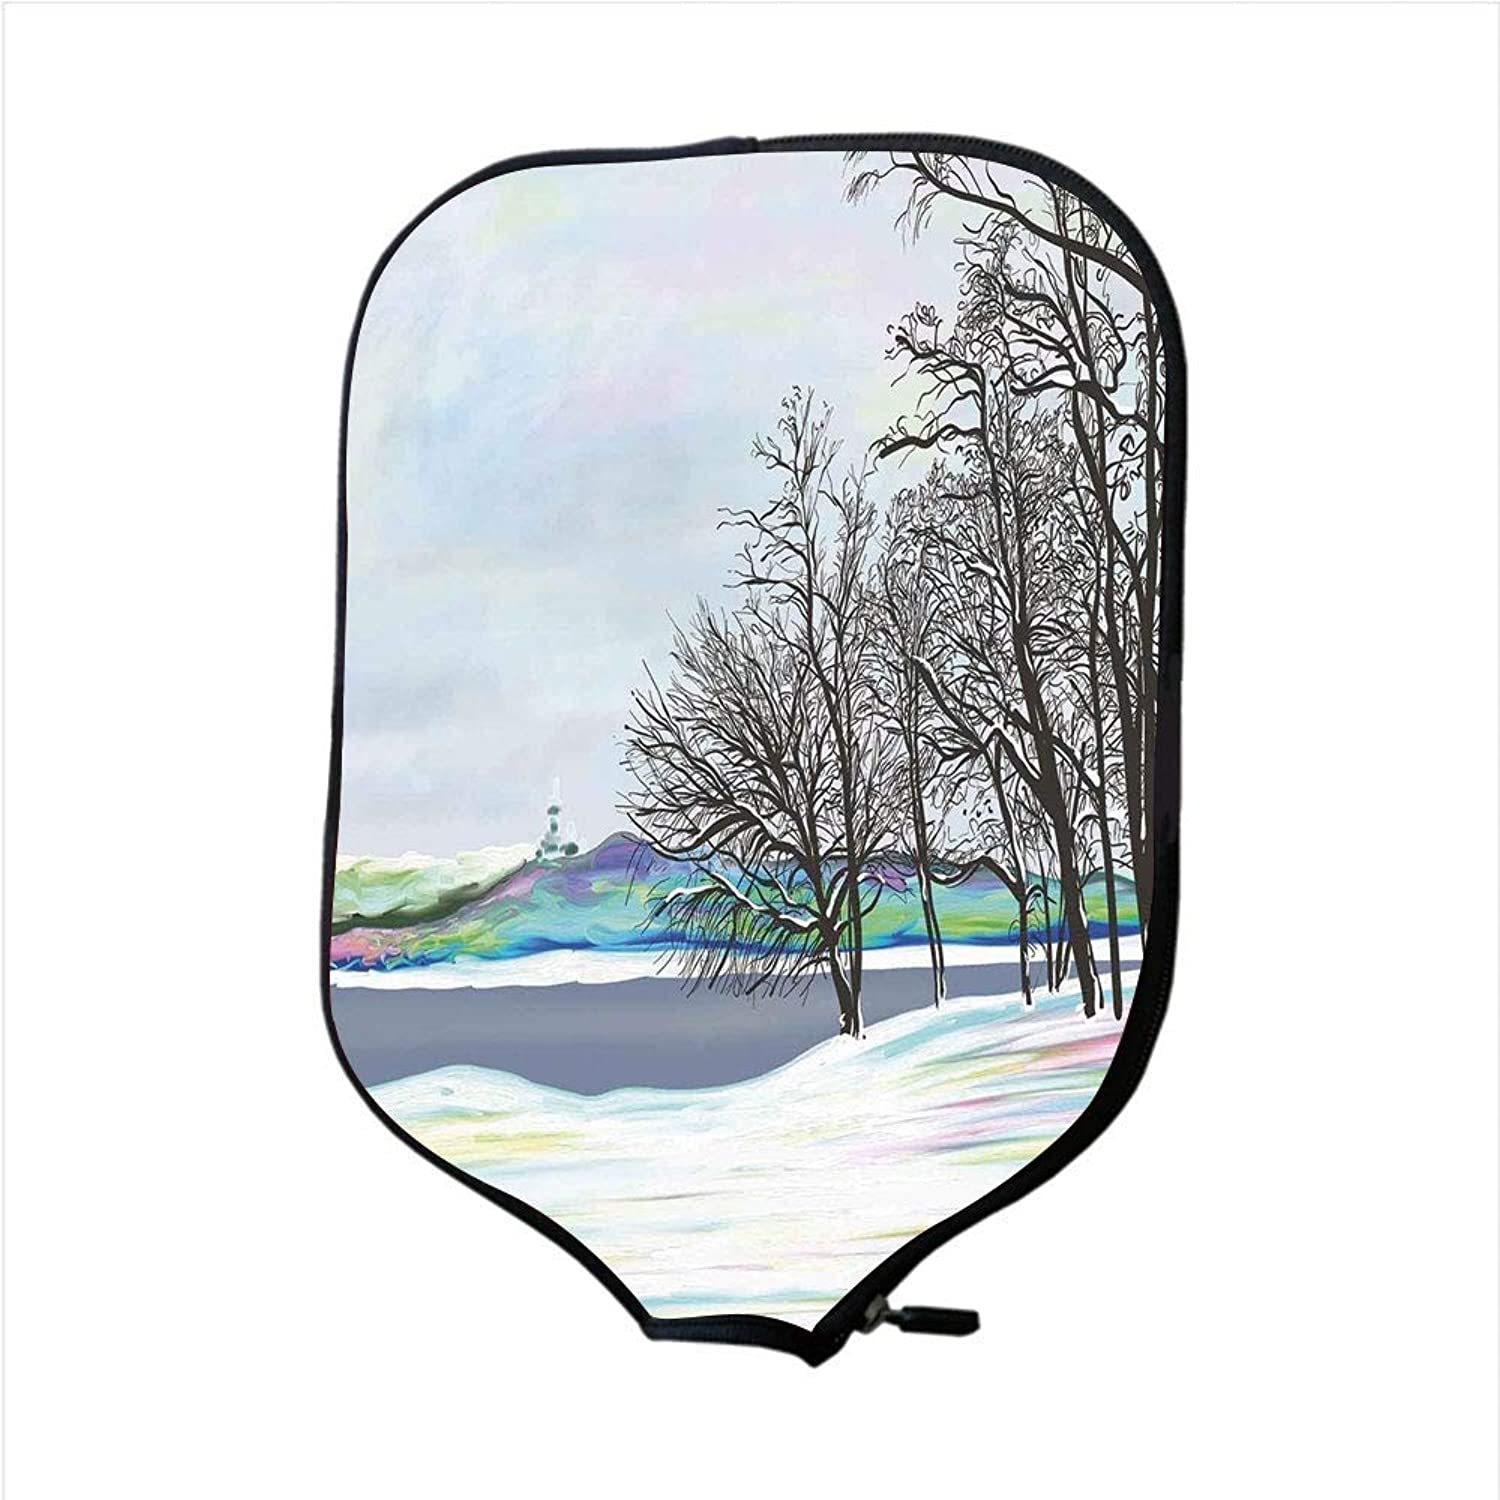 Fine Neoprene Pickleball Paddle Racket Cover Case,Nature,Rural Winter Forest with Leafless Tree Branches Digital Vibrant Effects Artwork,Multicolor,Fit for Most Rackets